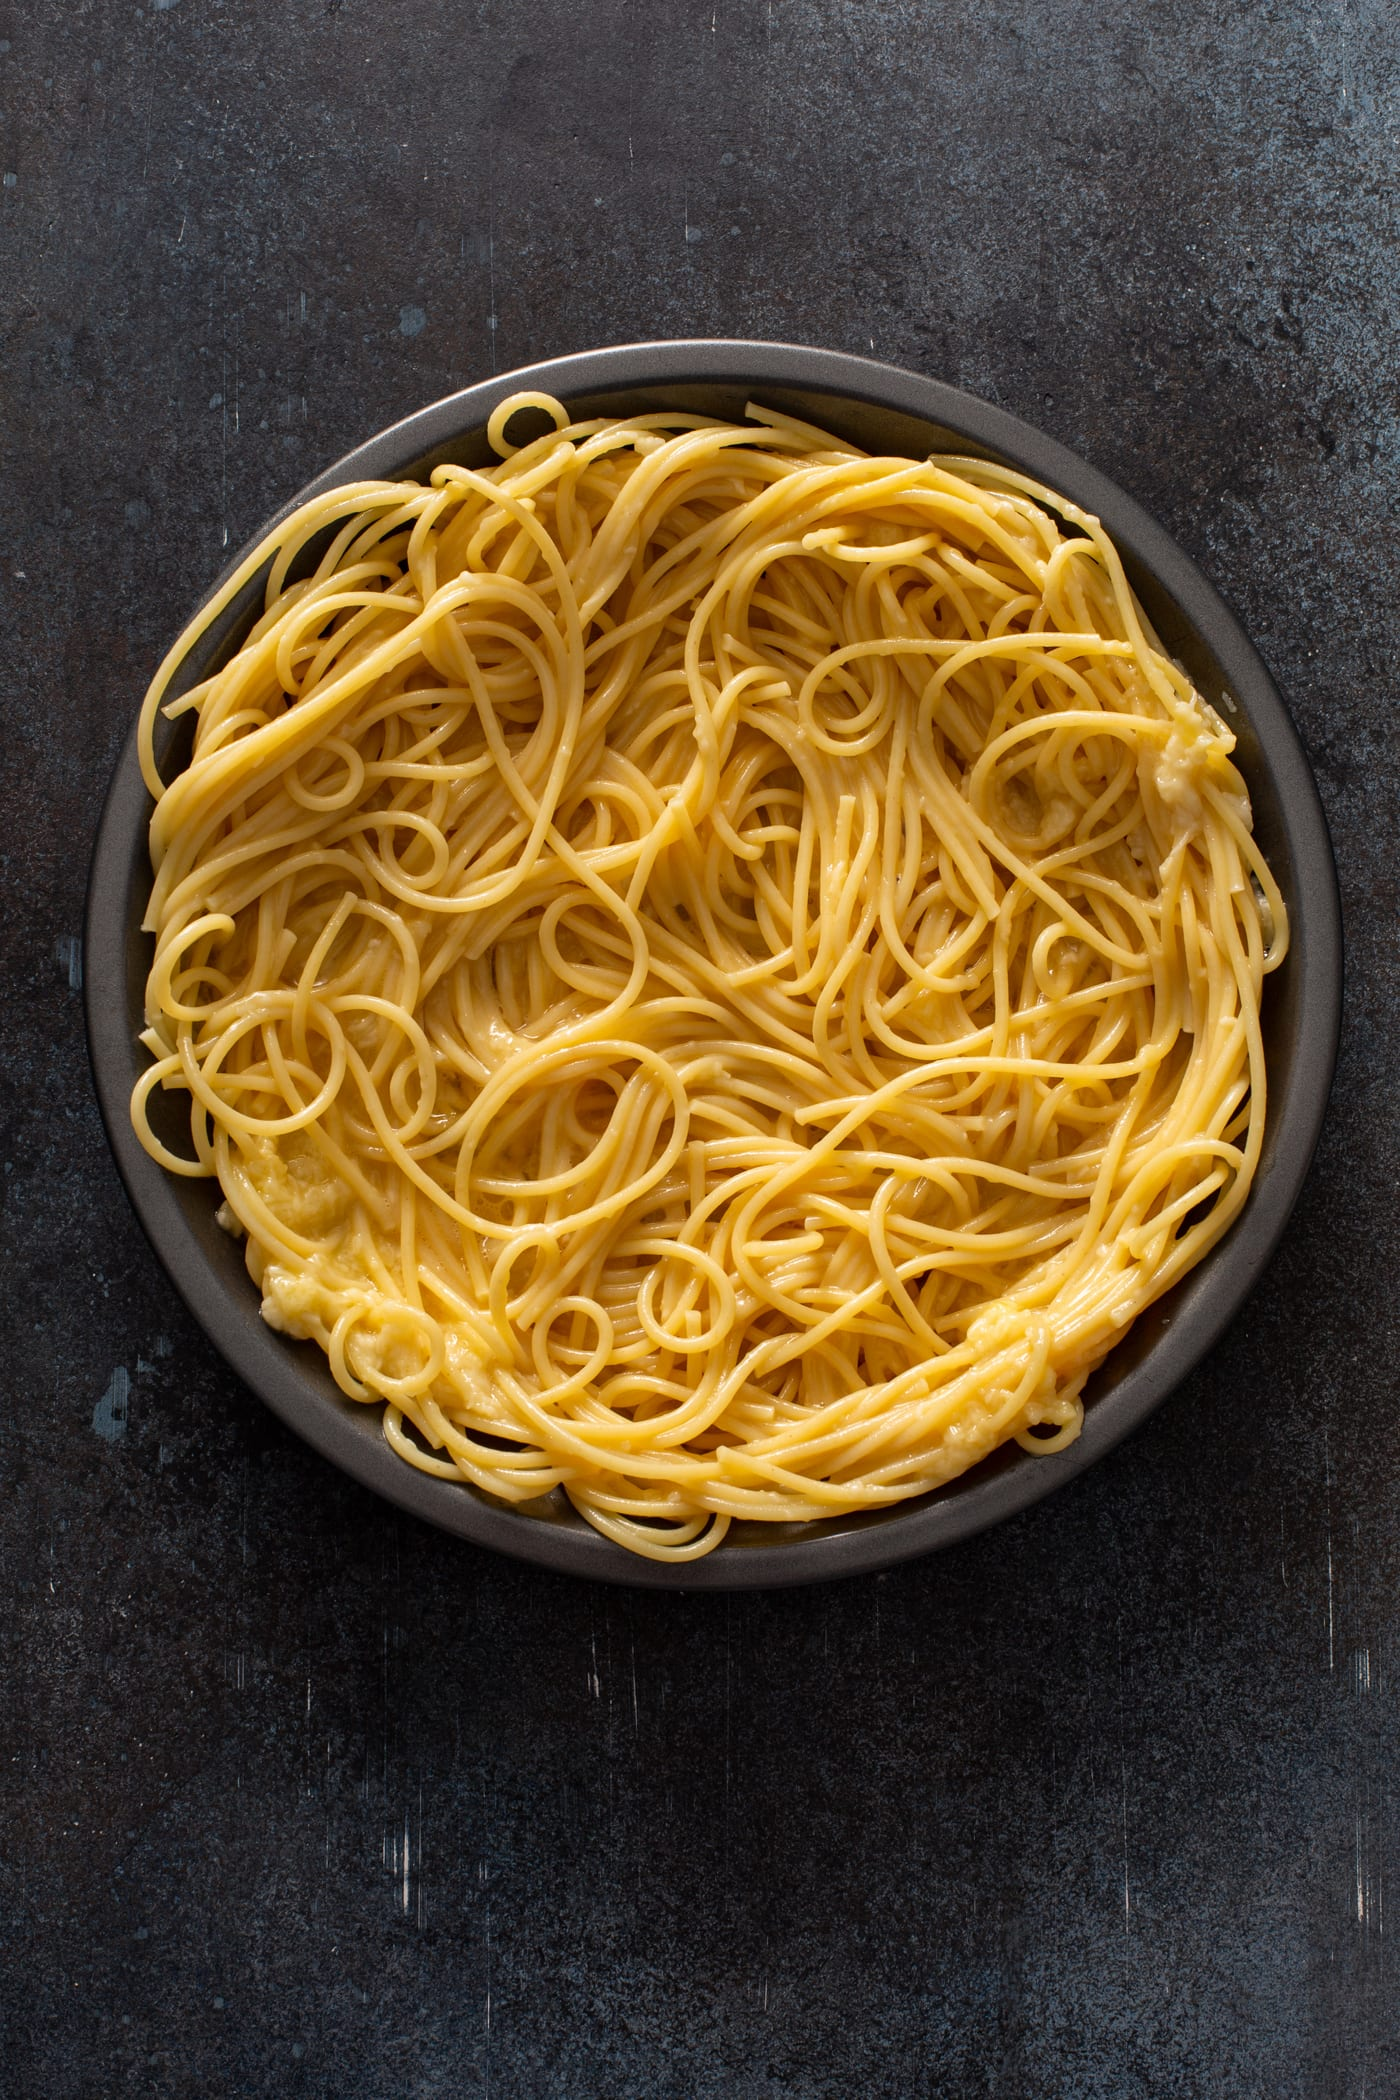 A pie dish filled with cooked spaghetti noodles.